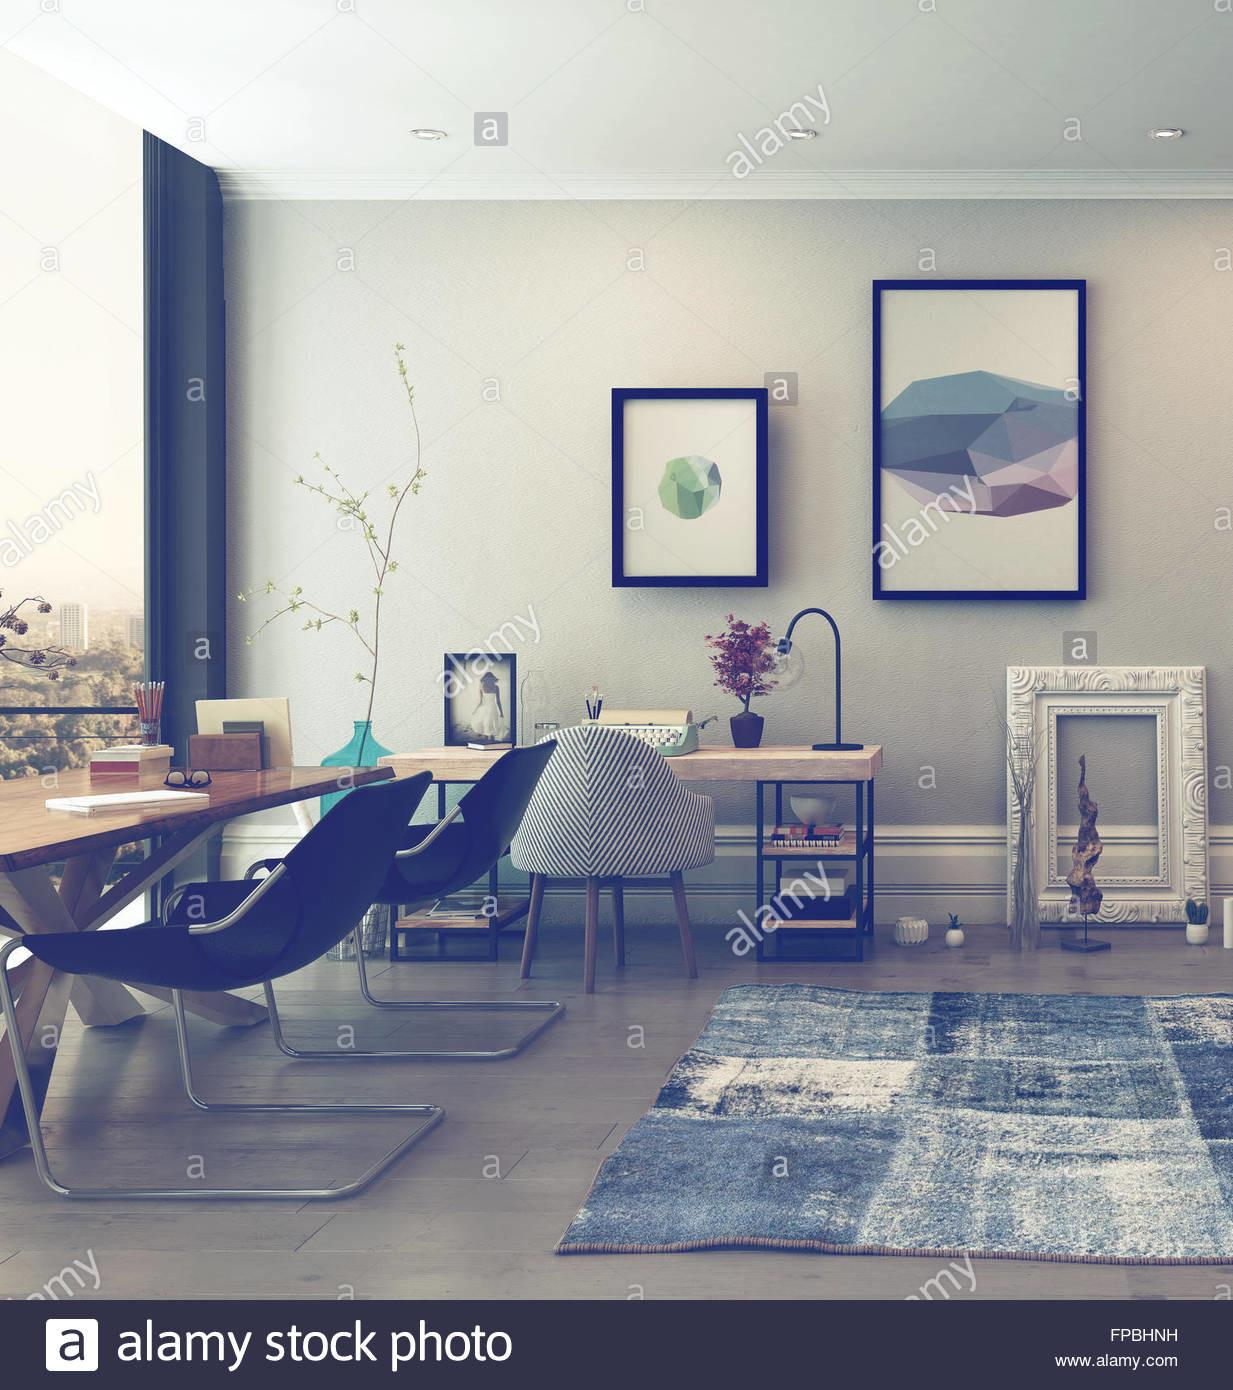 Open Concept Home Office Space Eclectic Furnishings